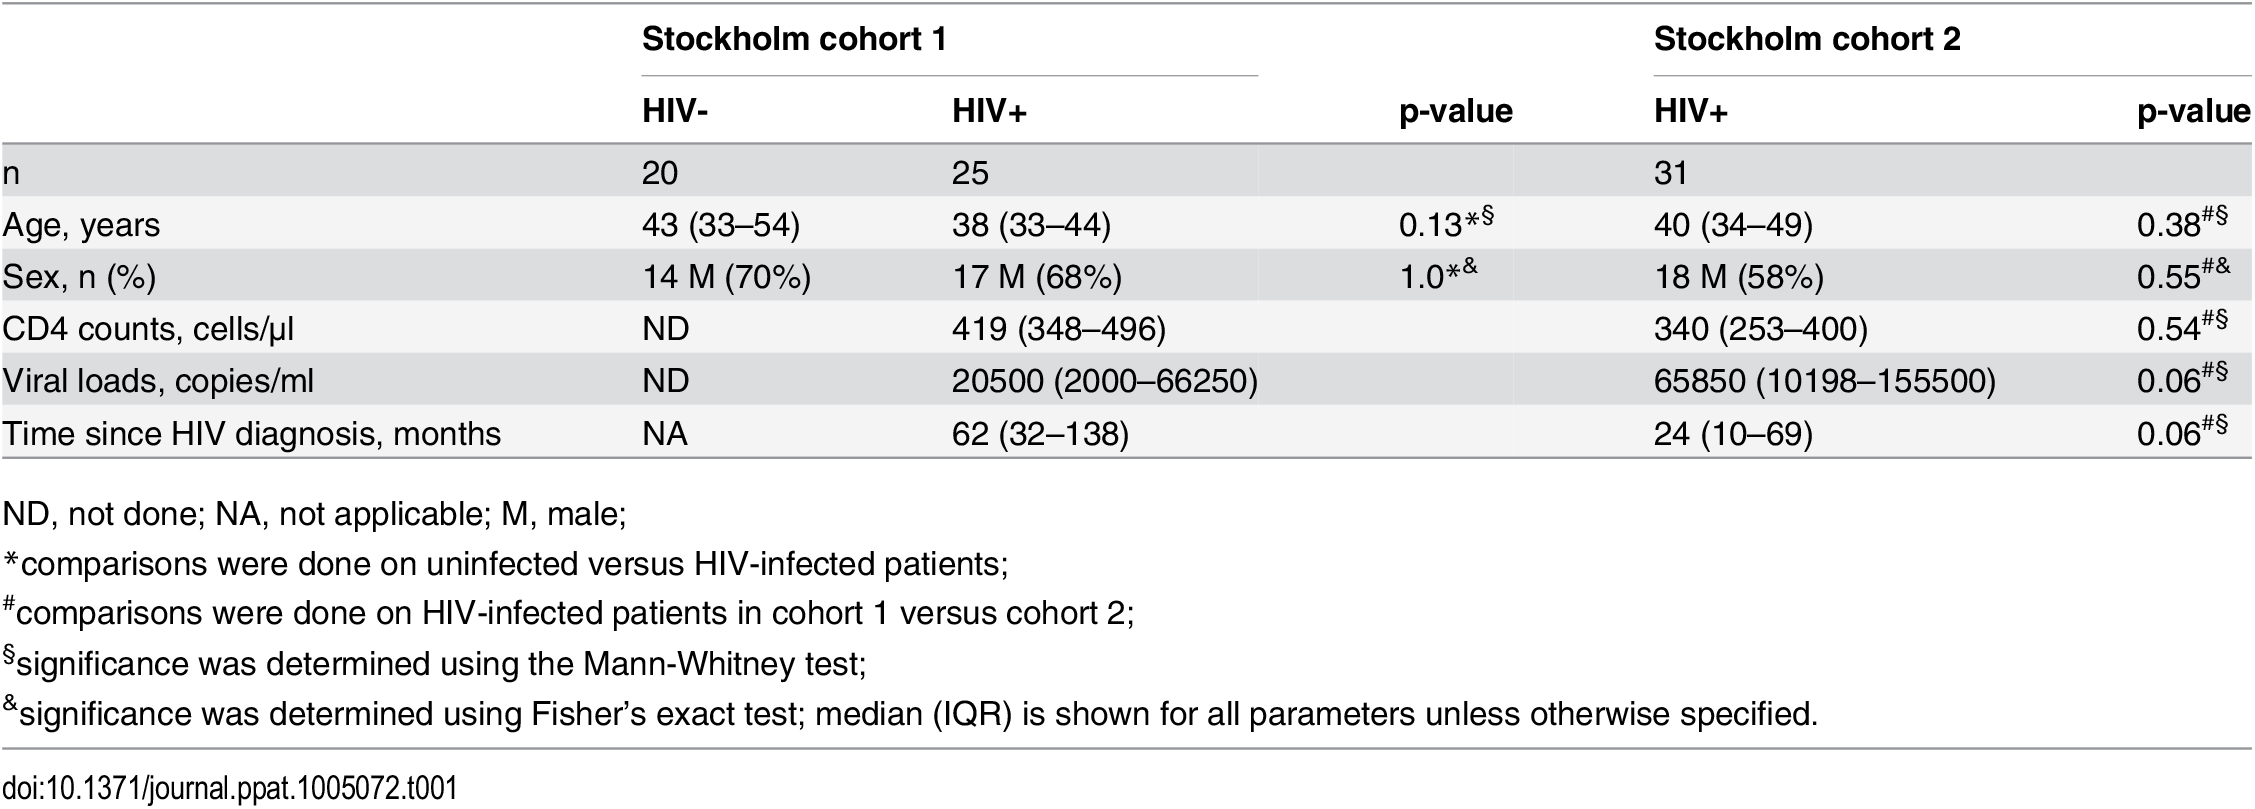 Characteristics of HIV-1 infected patients and healthy controls.